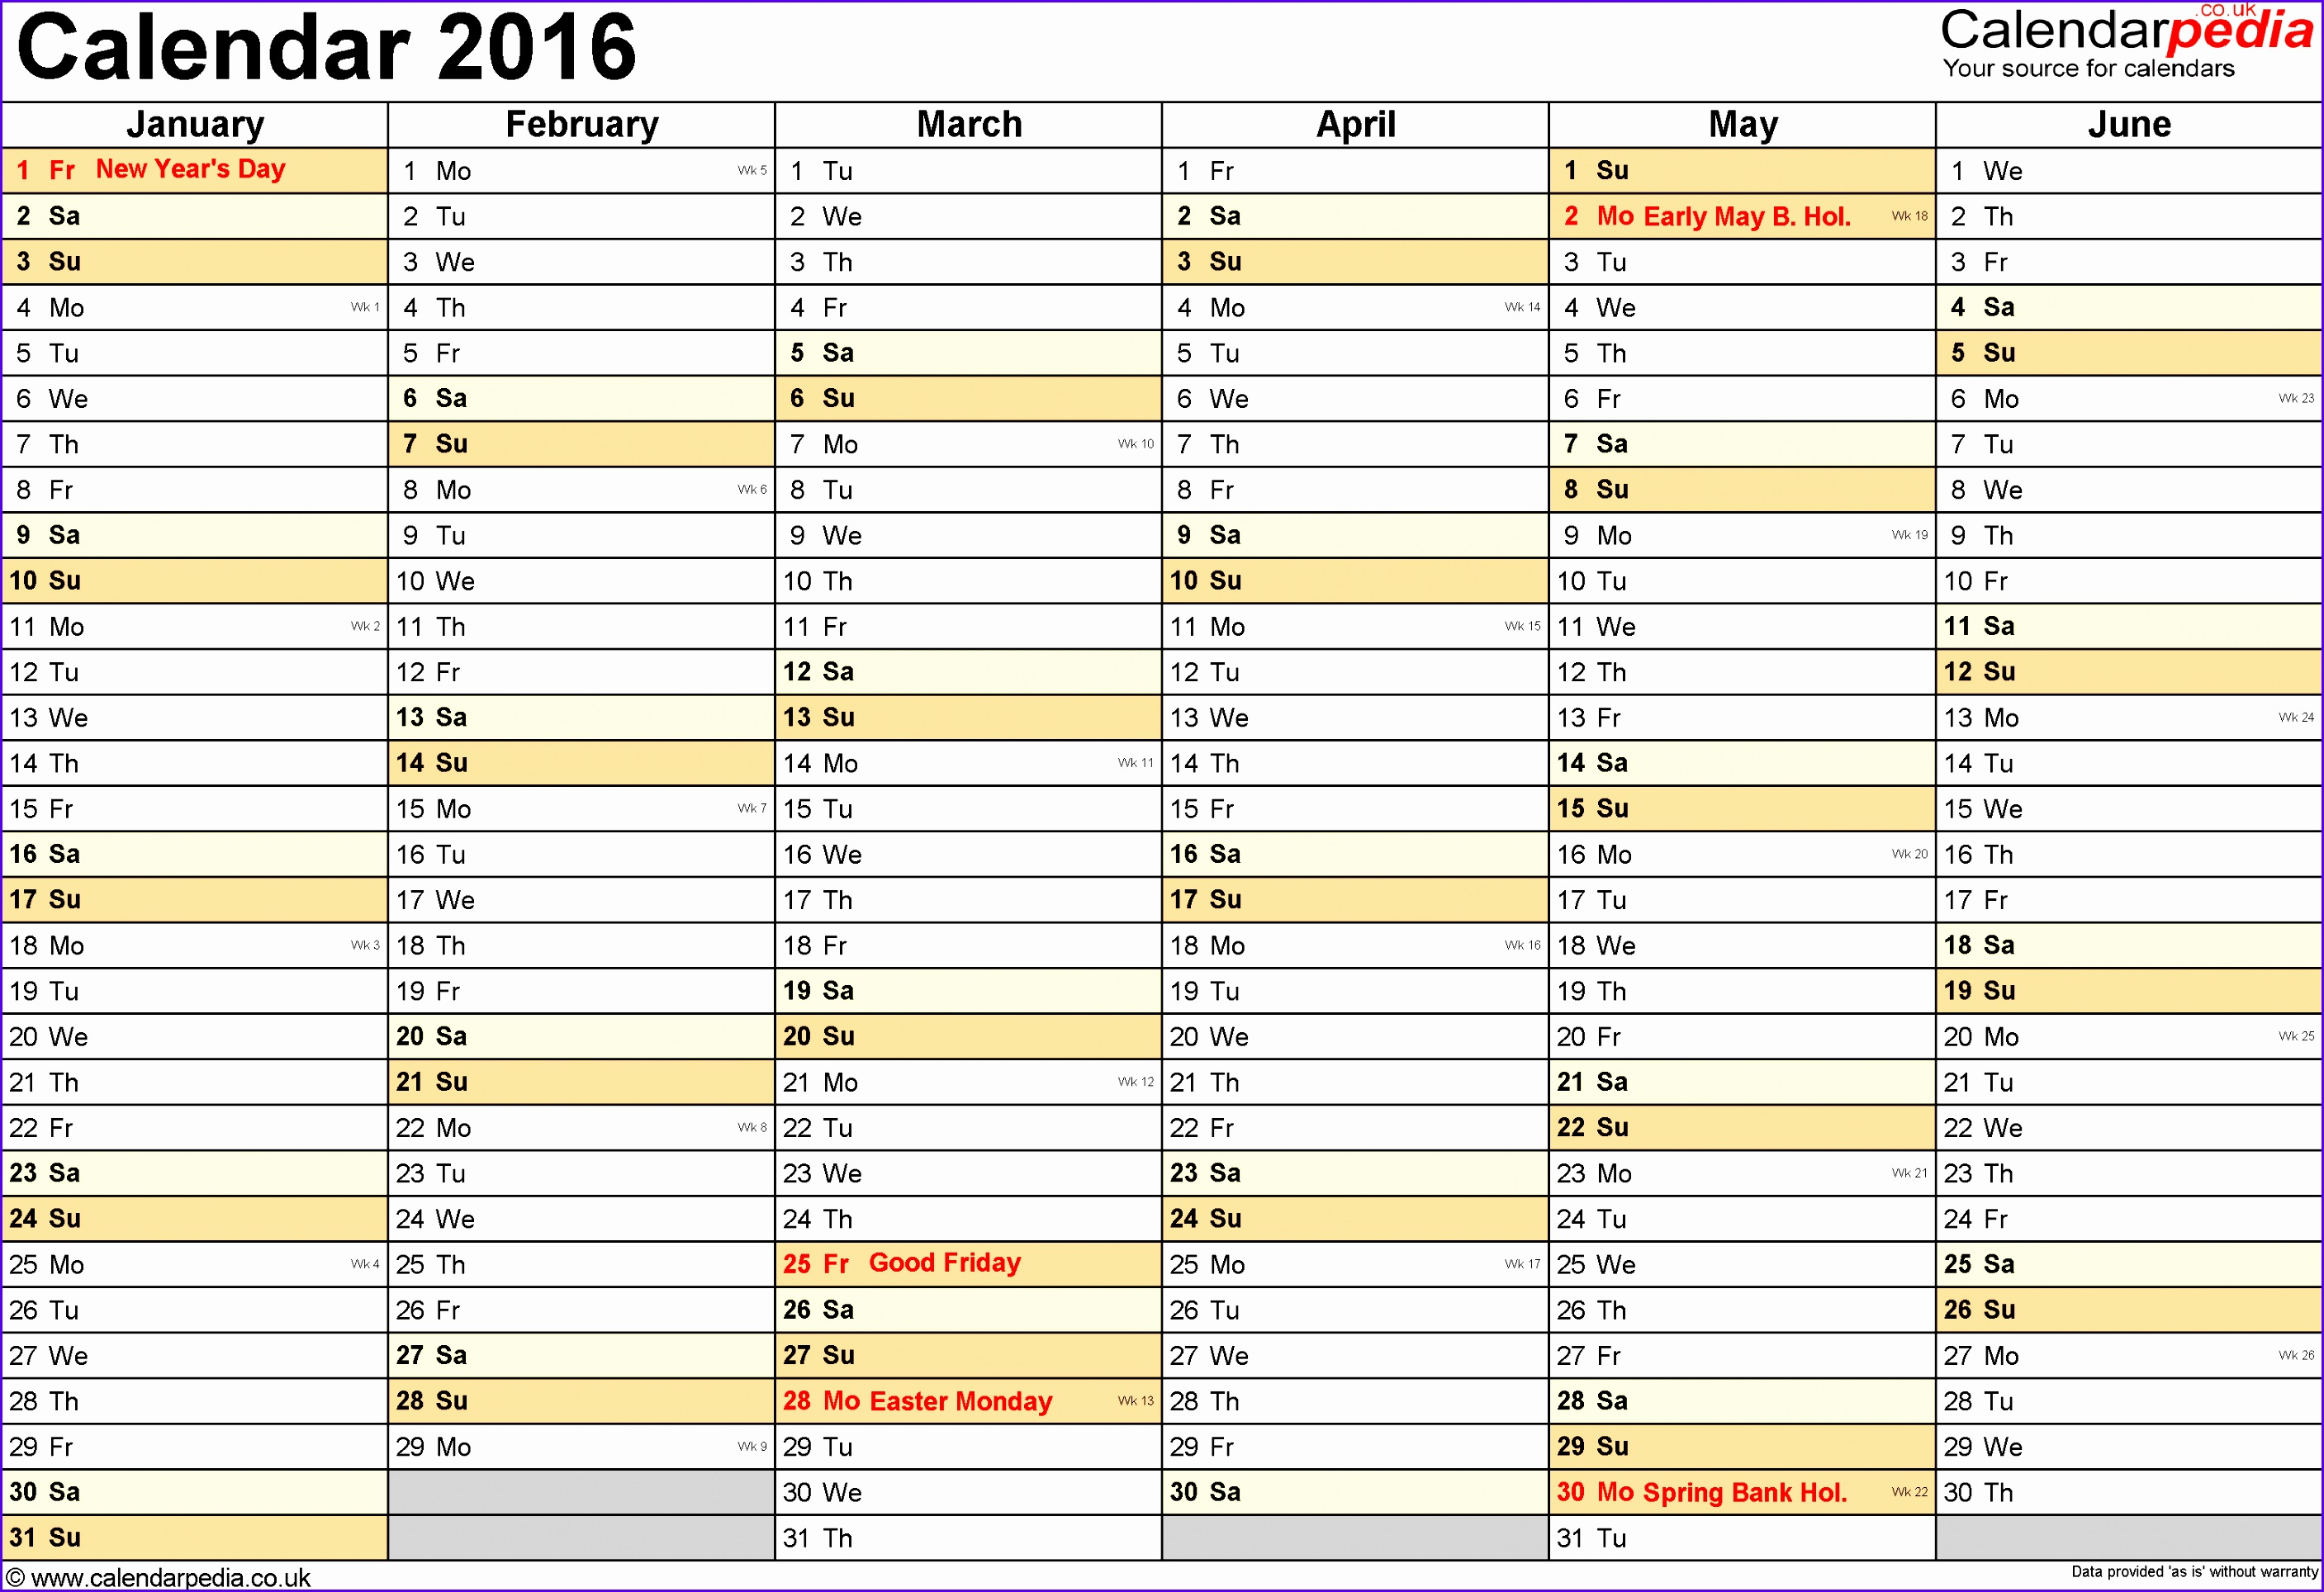 Examples Excel Calendar Templates Free Bbvjp Awesome Excel Calendar 2016 Uk 16 Printable Templates Xlsx Free 30932096